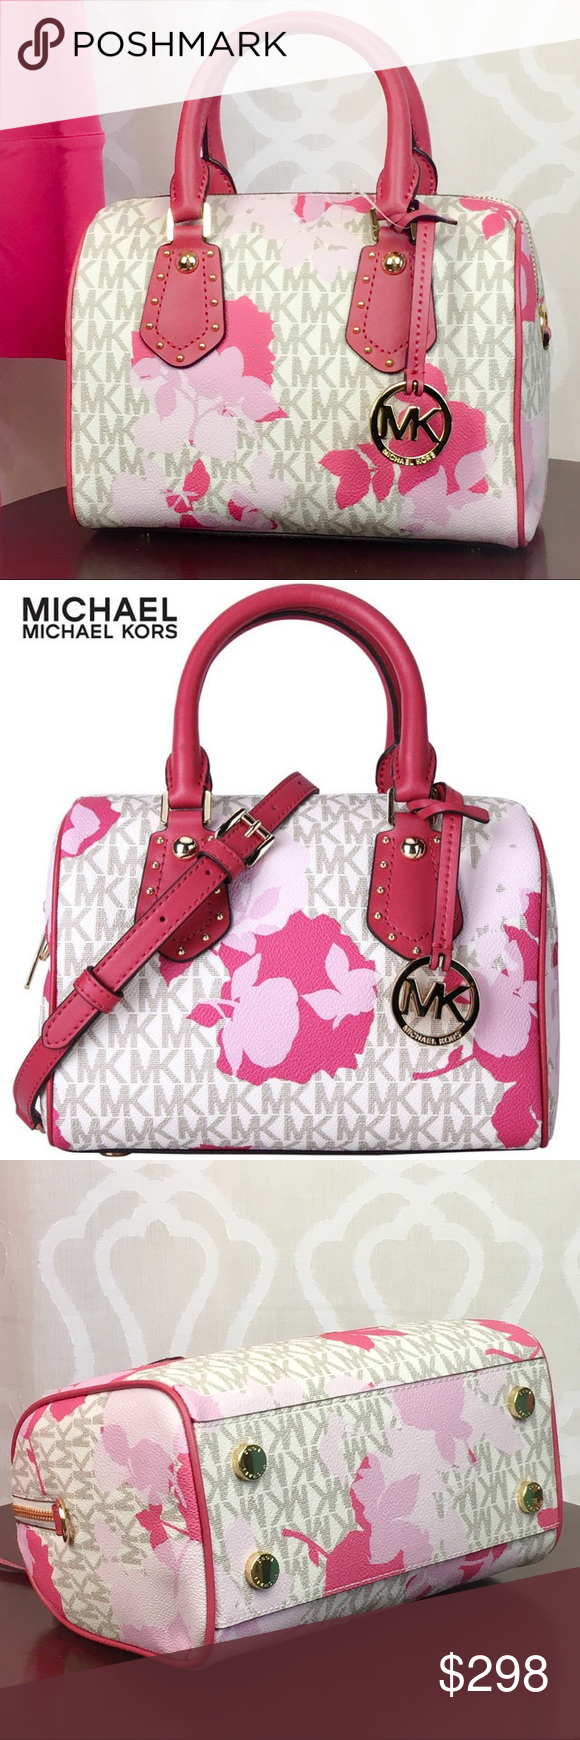 41c6c7fcb37a Michael Kors Pink Floral Aria Satchel Michael Kors does Cute right! The Aria  Small Satchel in